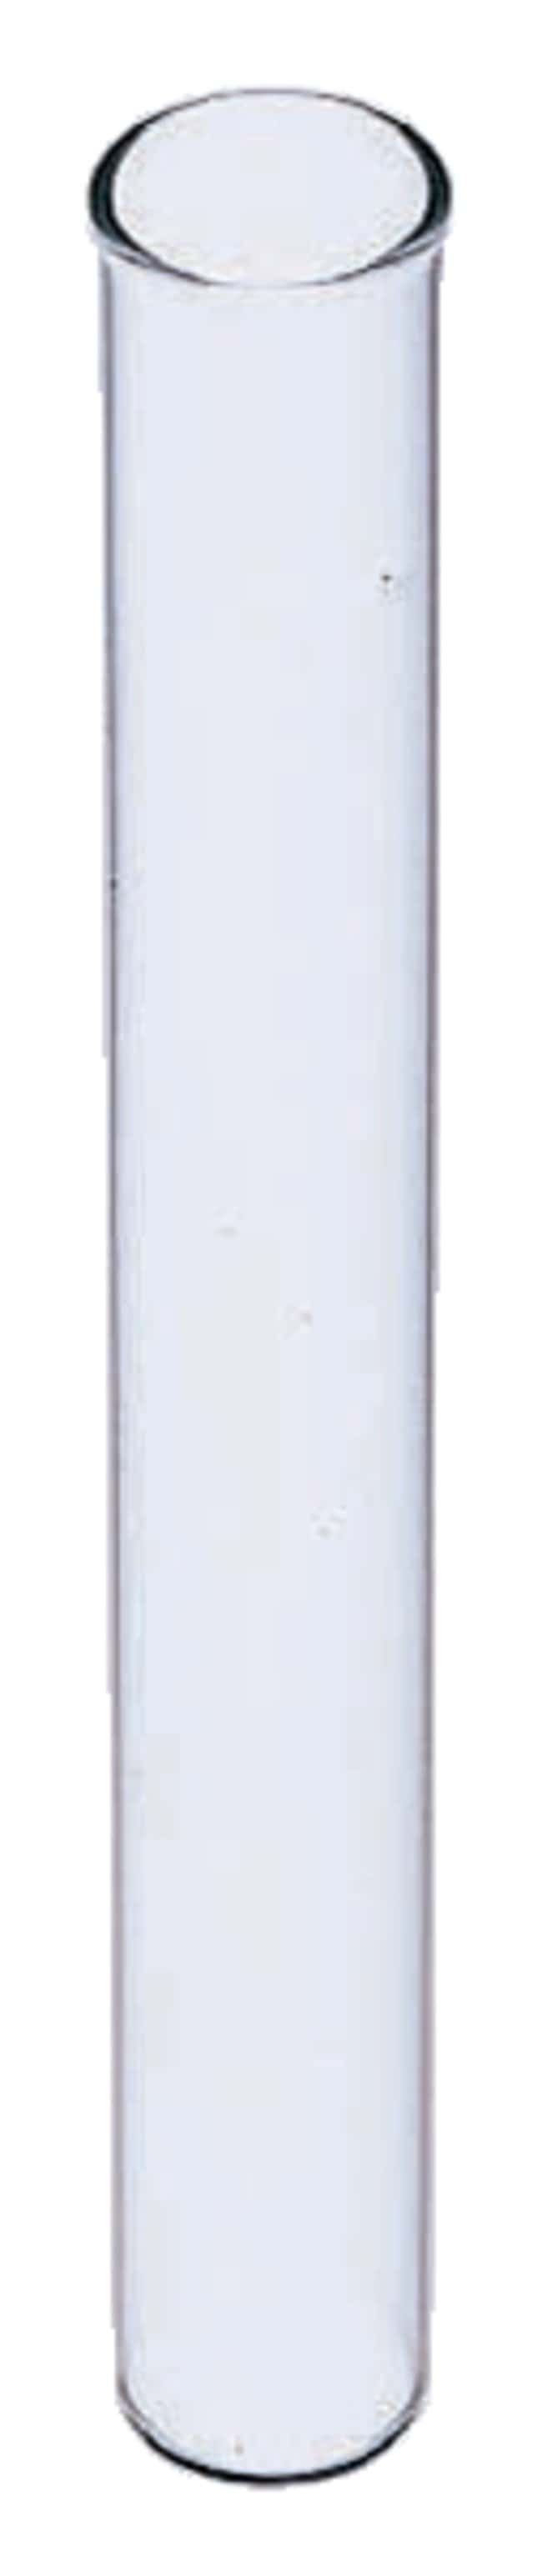 Fisherbrand™ Disposable Borosilicate Glass Tubes with Plain End